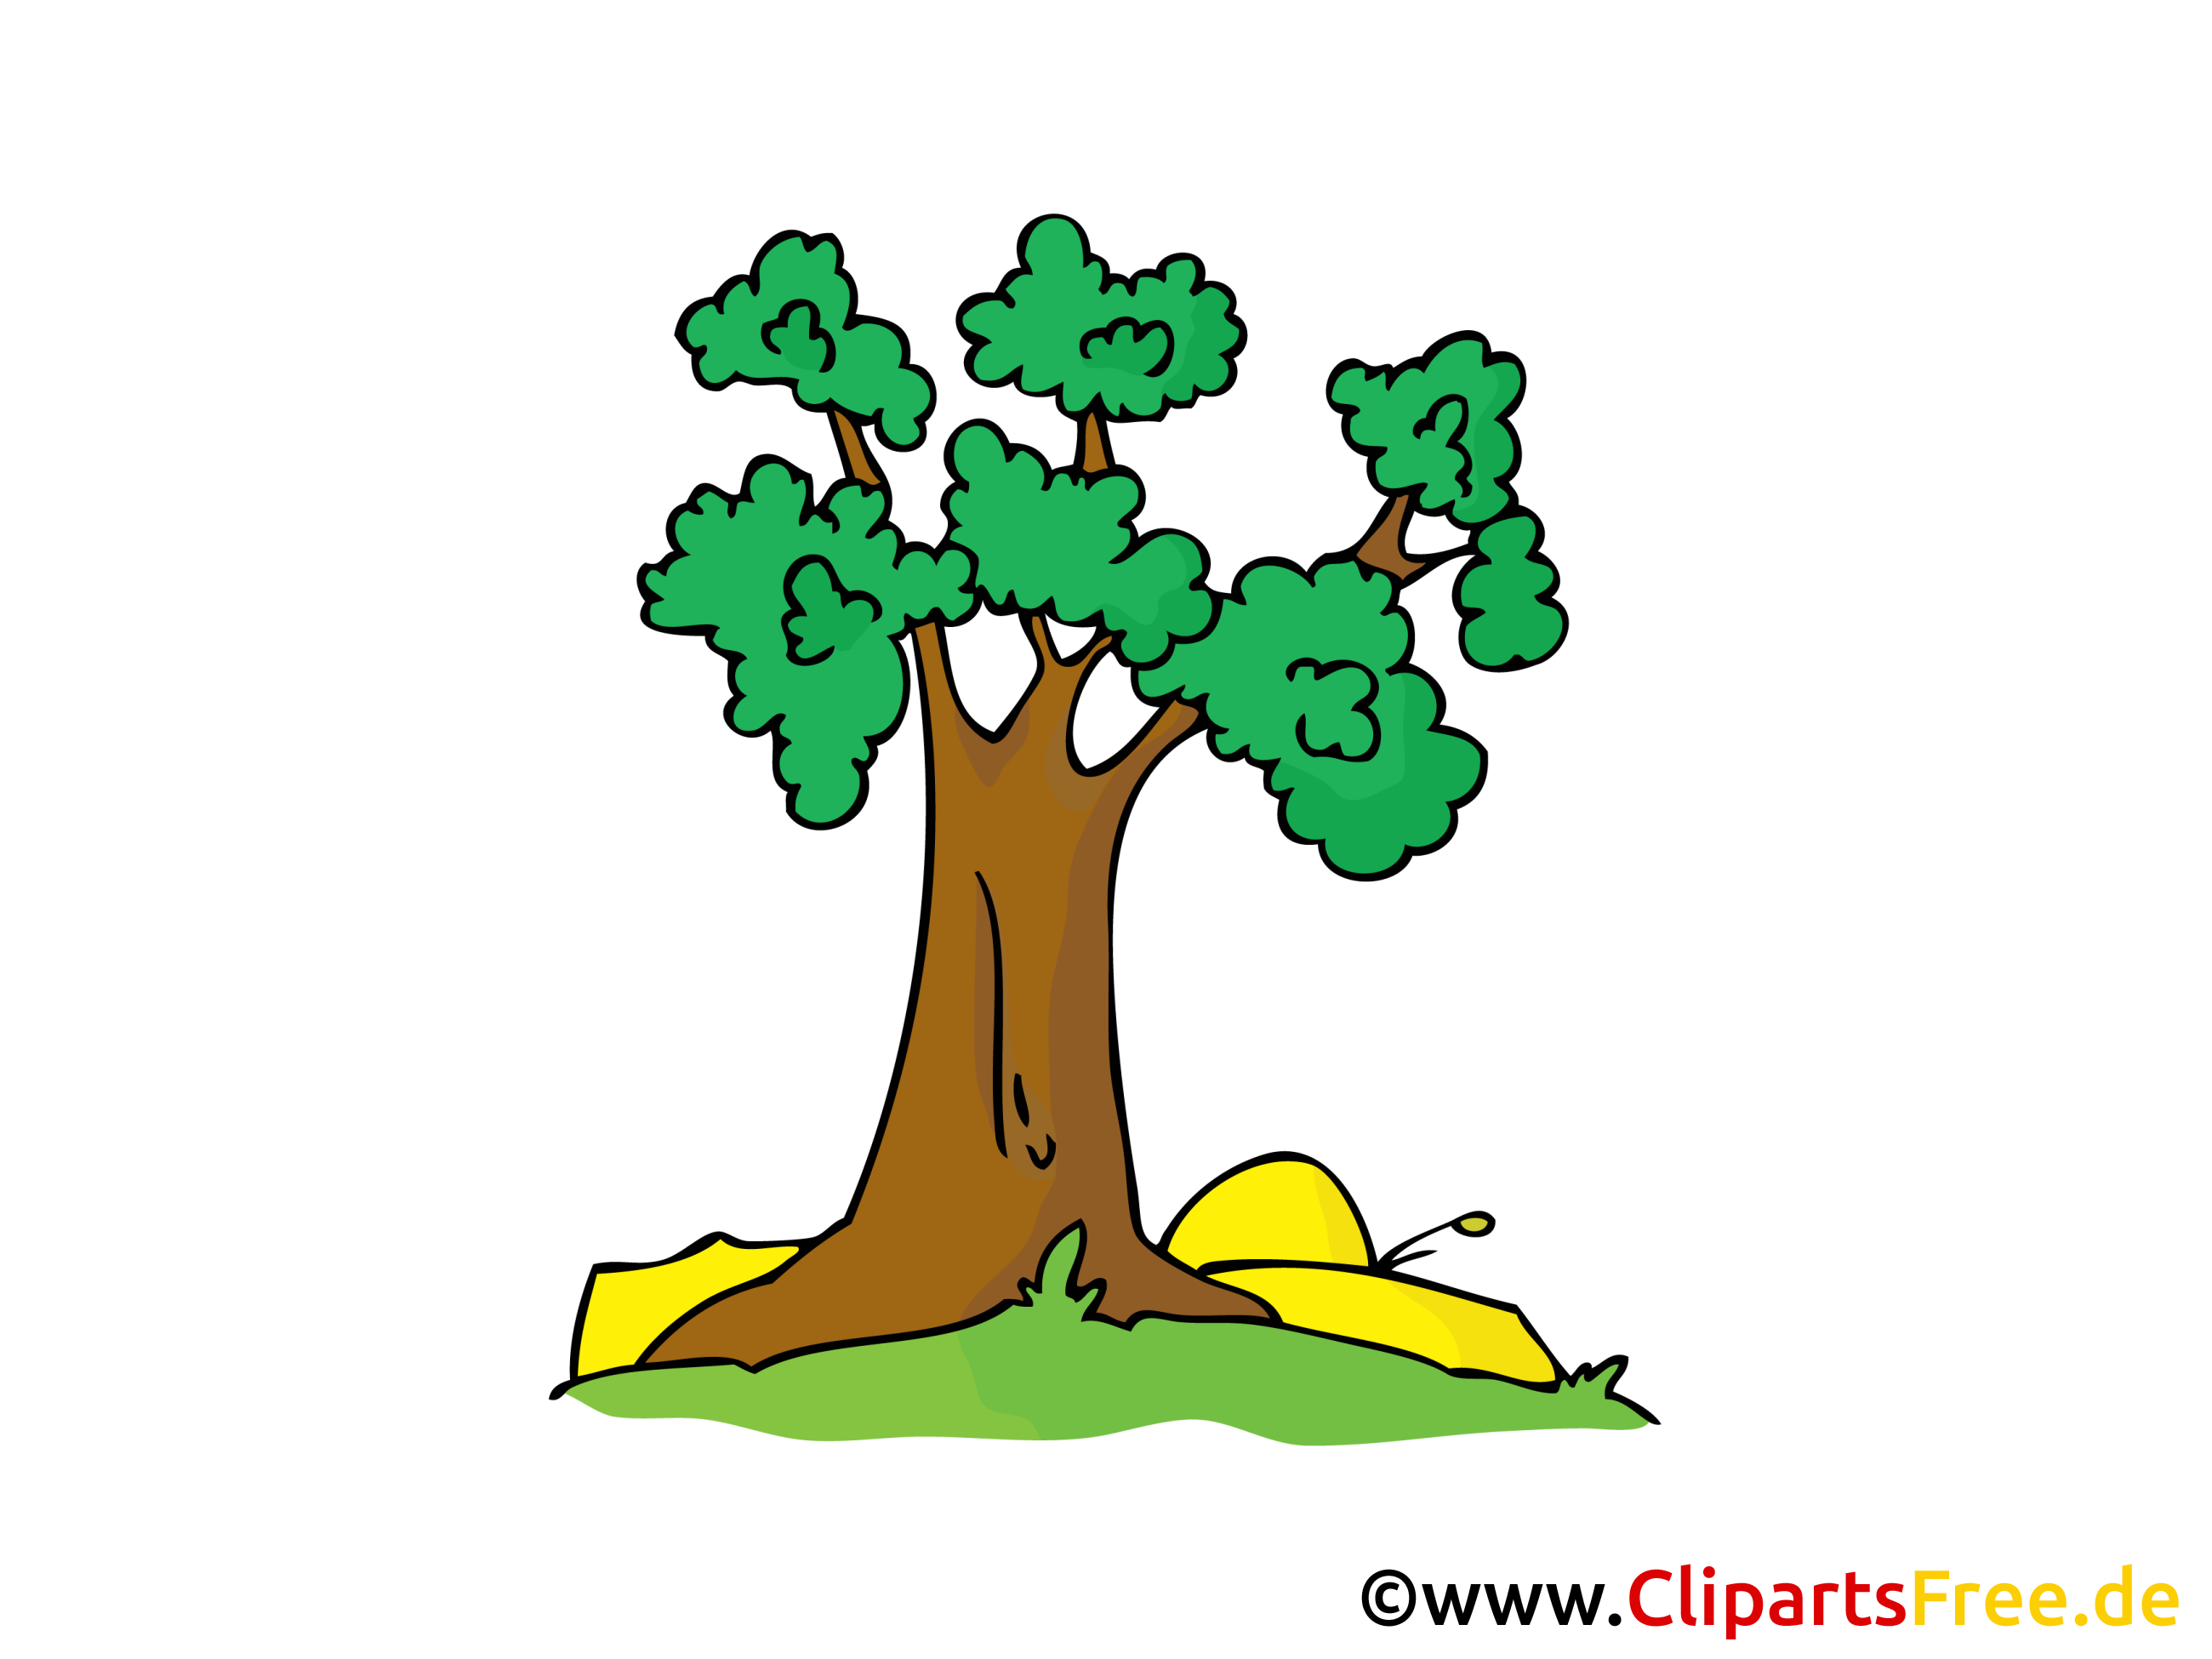 Baum Bild, Clipart, Illustration, Comic, Cartoon gratis